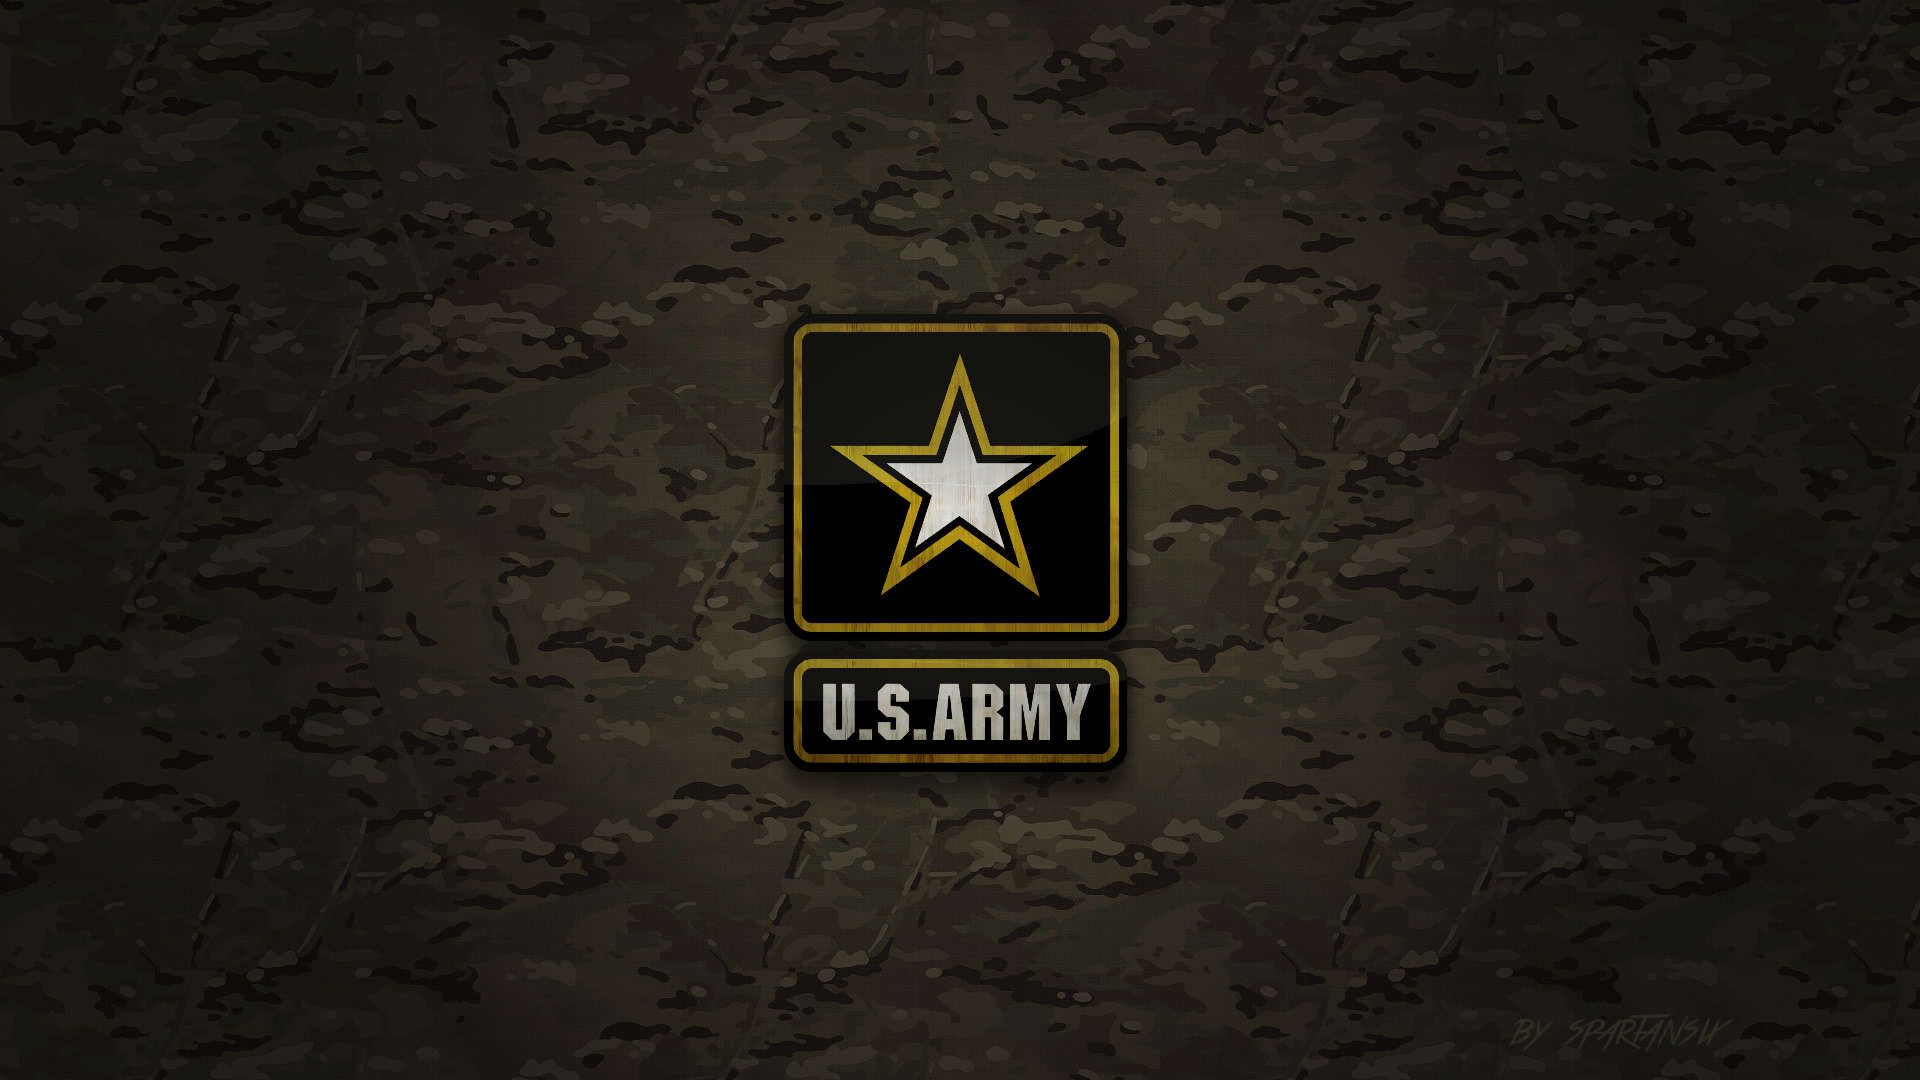 Us Army Wallpaper Http Hdwallpaper Info Us Army Wallpaper Hd Wallpapers Army Wallpaper Military Wallpaper Canadian Army